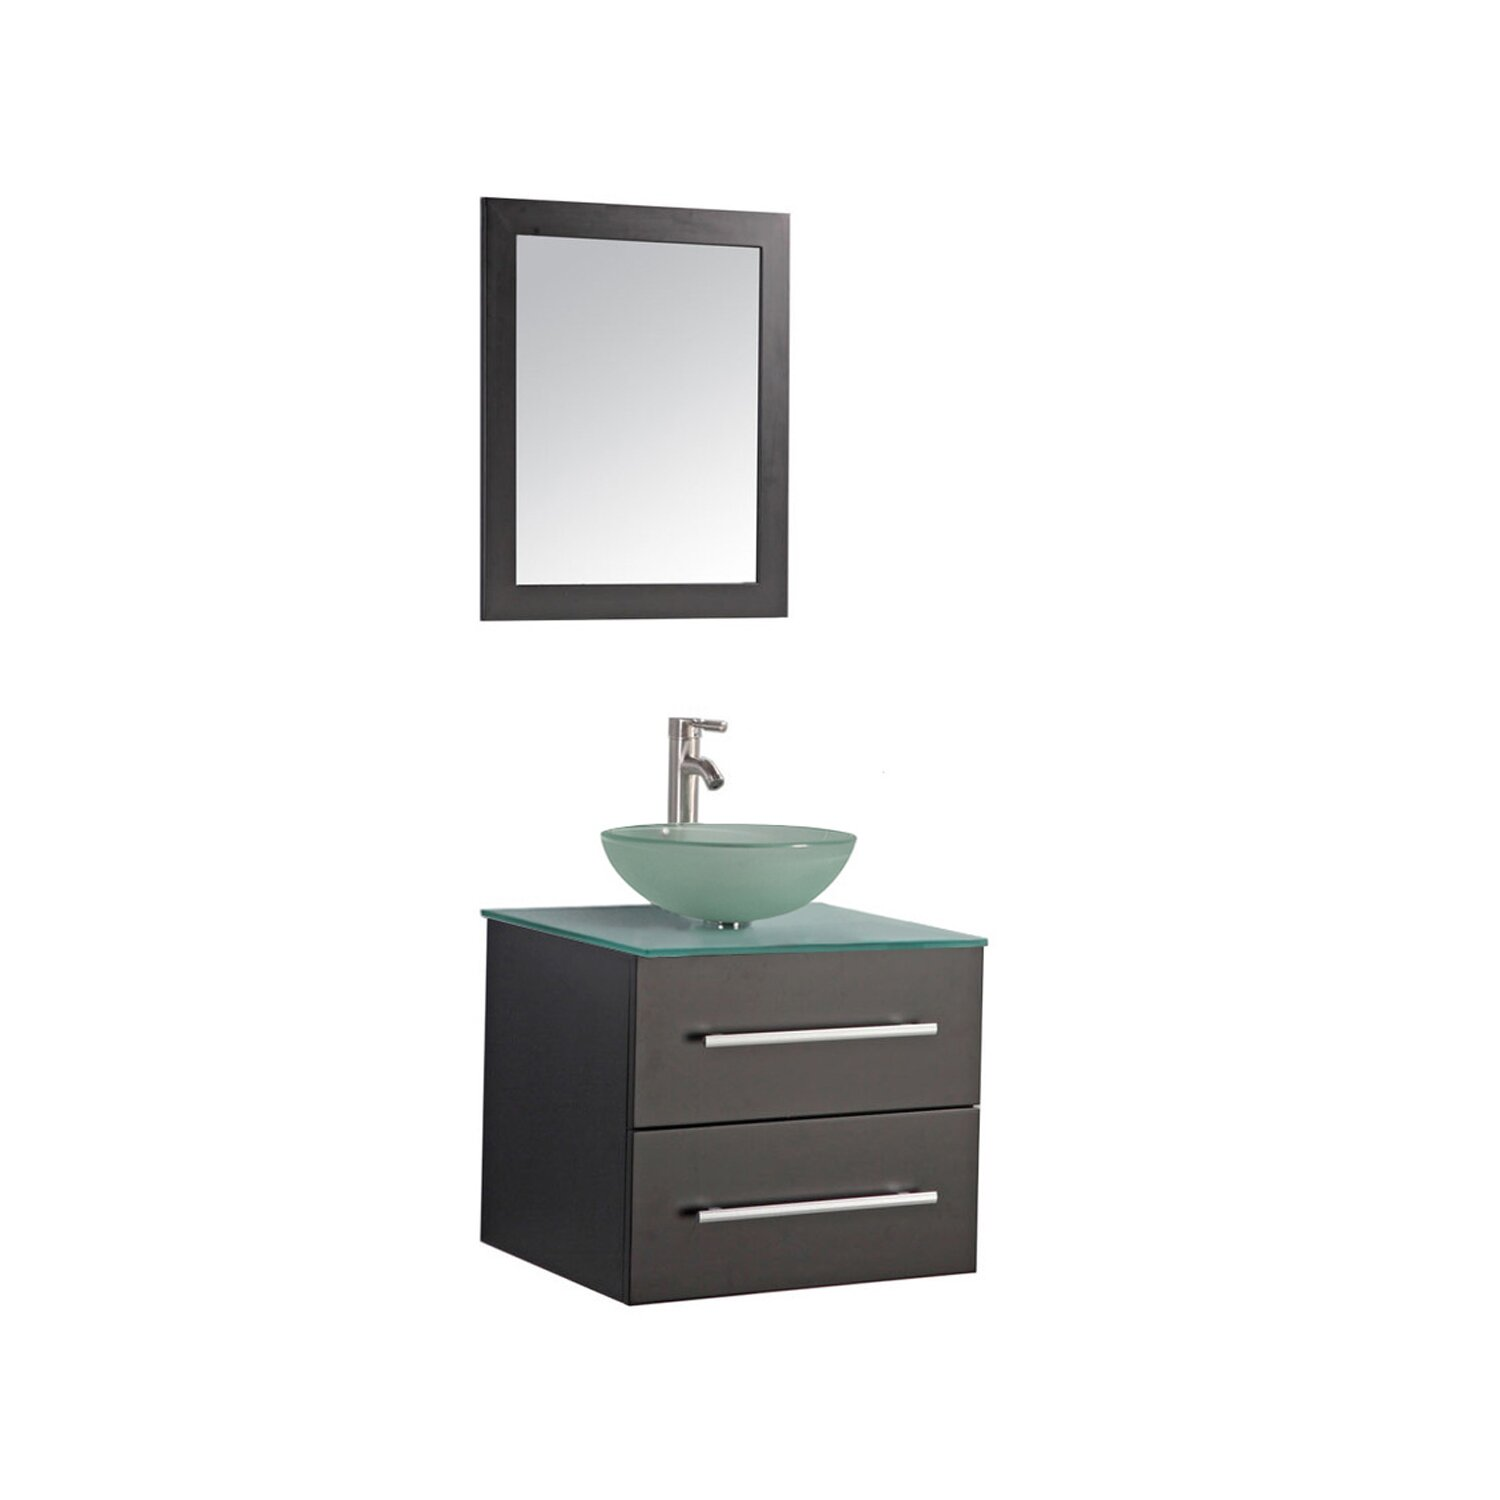 Mtdvanities Cuba 24 Single Wall Mounted Bathroom Vanity Set With Mirror Reviews Wayfair